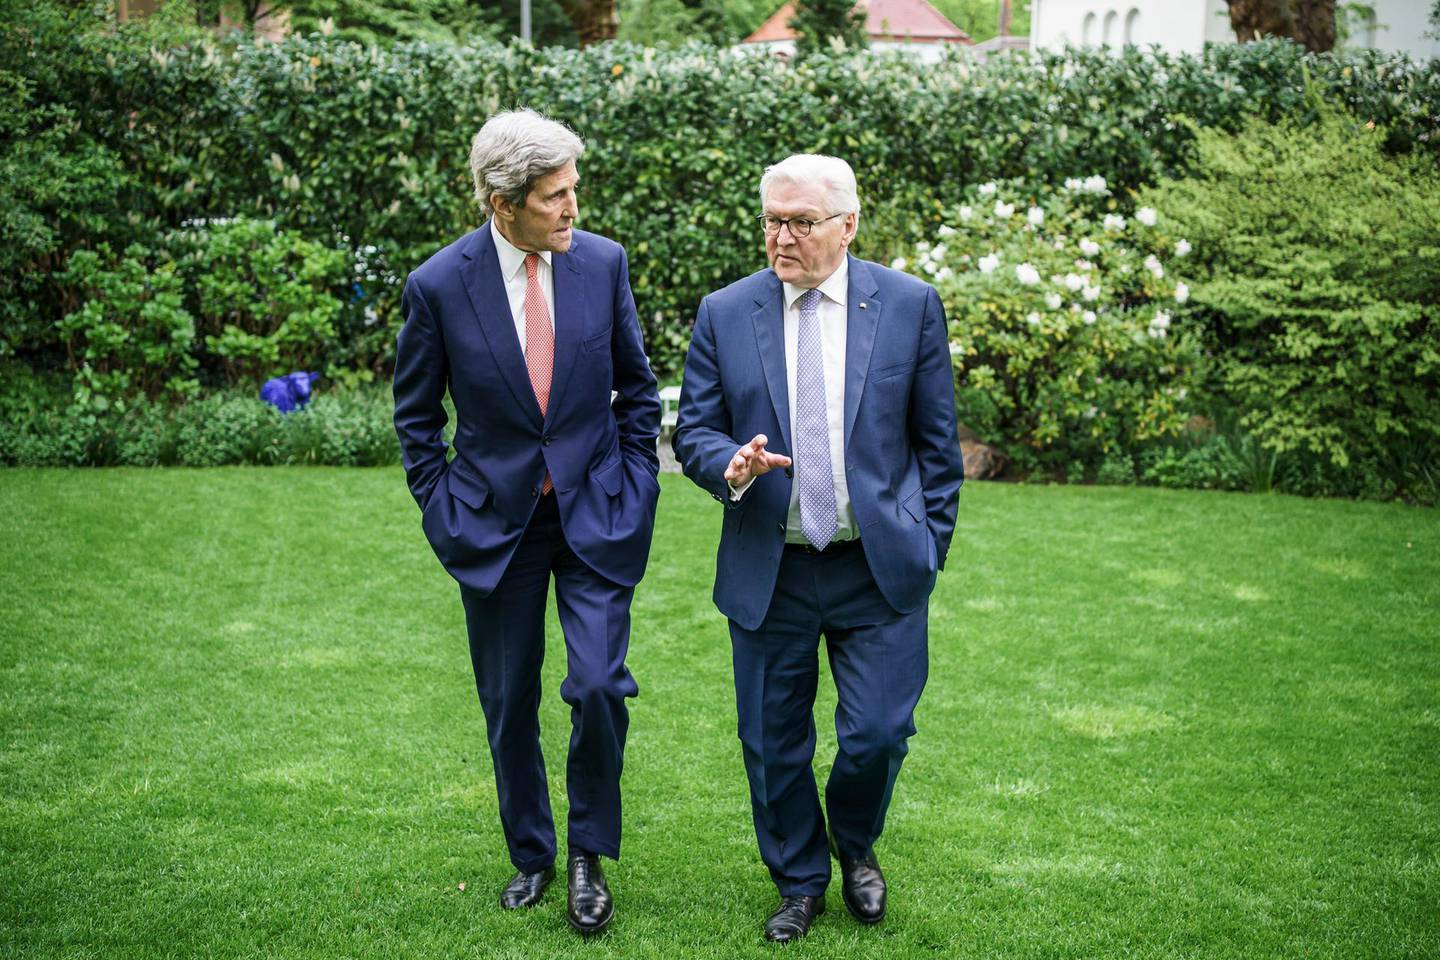 BERLIN, GERMANY - MAY 17:  In this handout photo provided by the German Government Press Office (BPA), German President Frank-Walter Steinmeier (R) talks to US Envoy for Climate State John Kerry in the garden of his villa during a private dinner on May 17, 2021 in Berlin, Germany.  (Photo by Jesco Denzel/Bundesregierung via Getty Images)